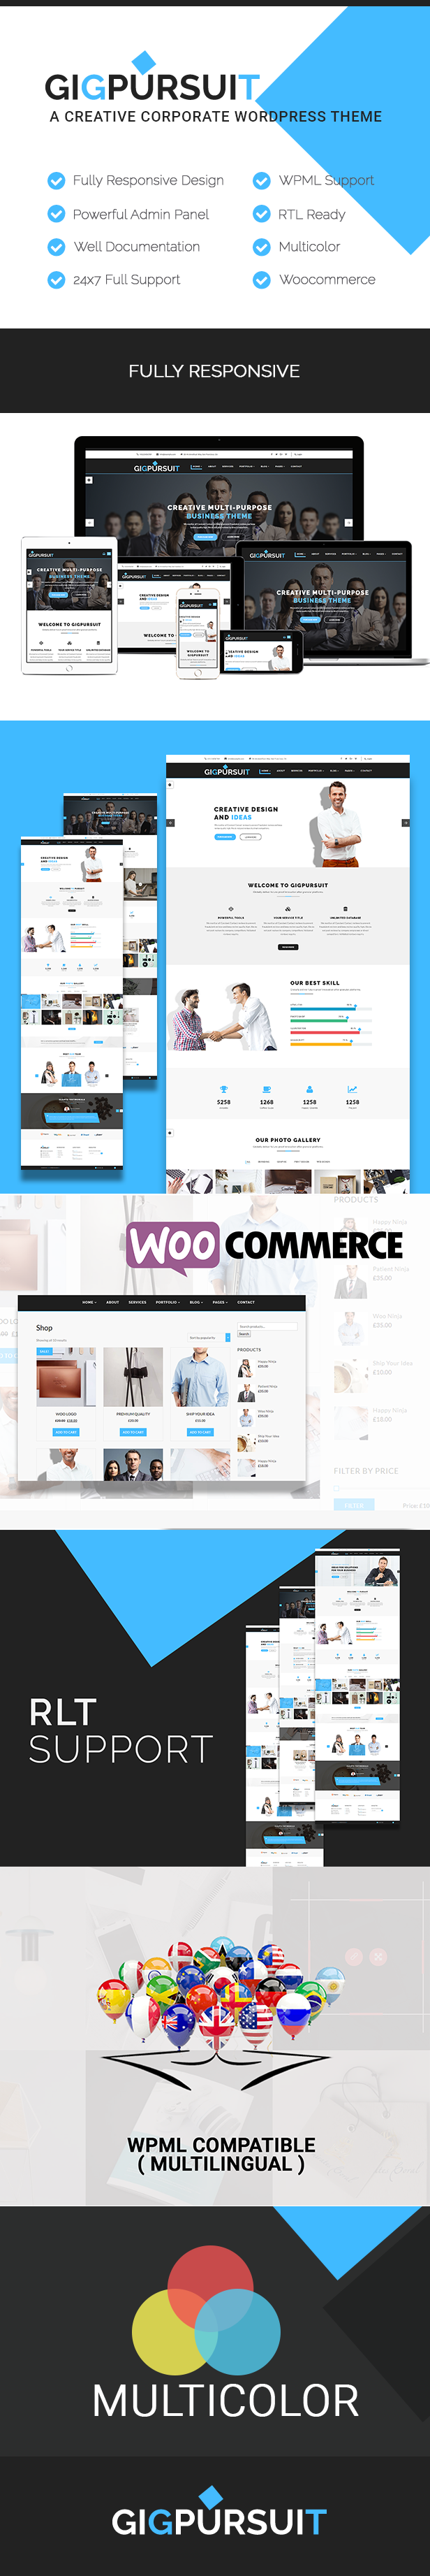 GigPursuit - Business, Corporate, Creative WordPress Theme